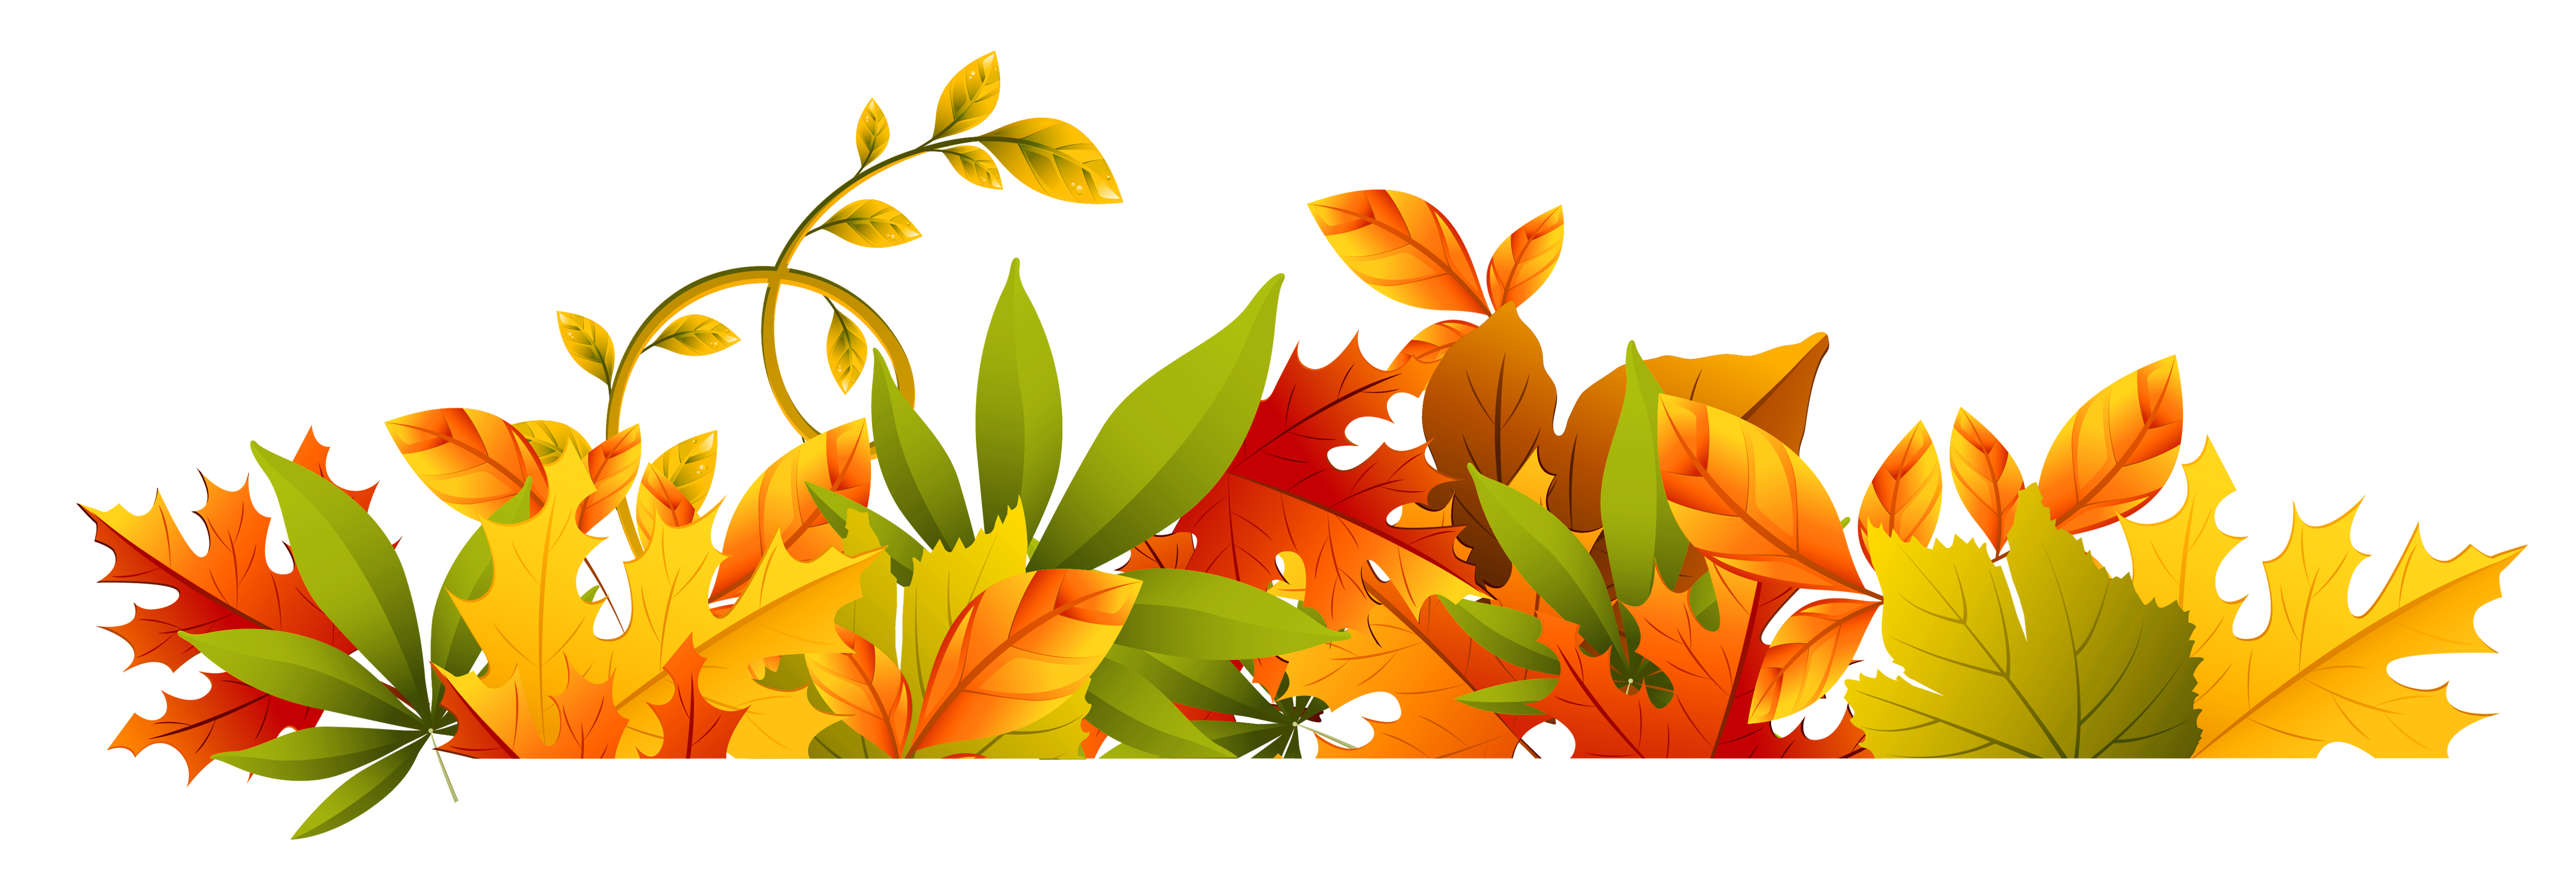 5264x1796 Fall Clip Art Free Images